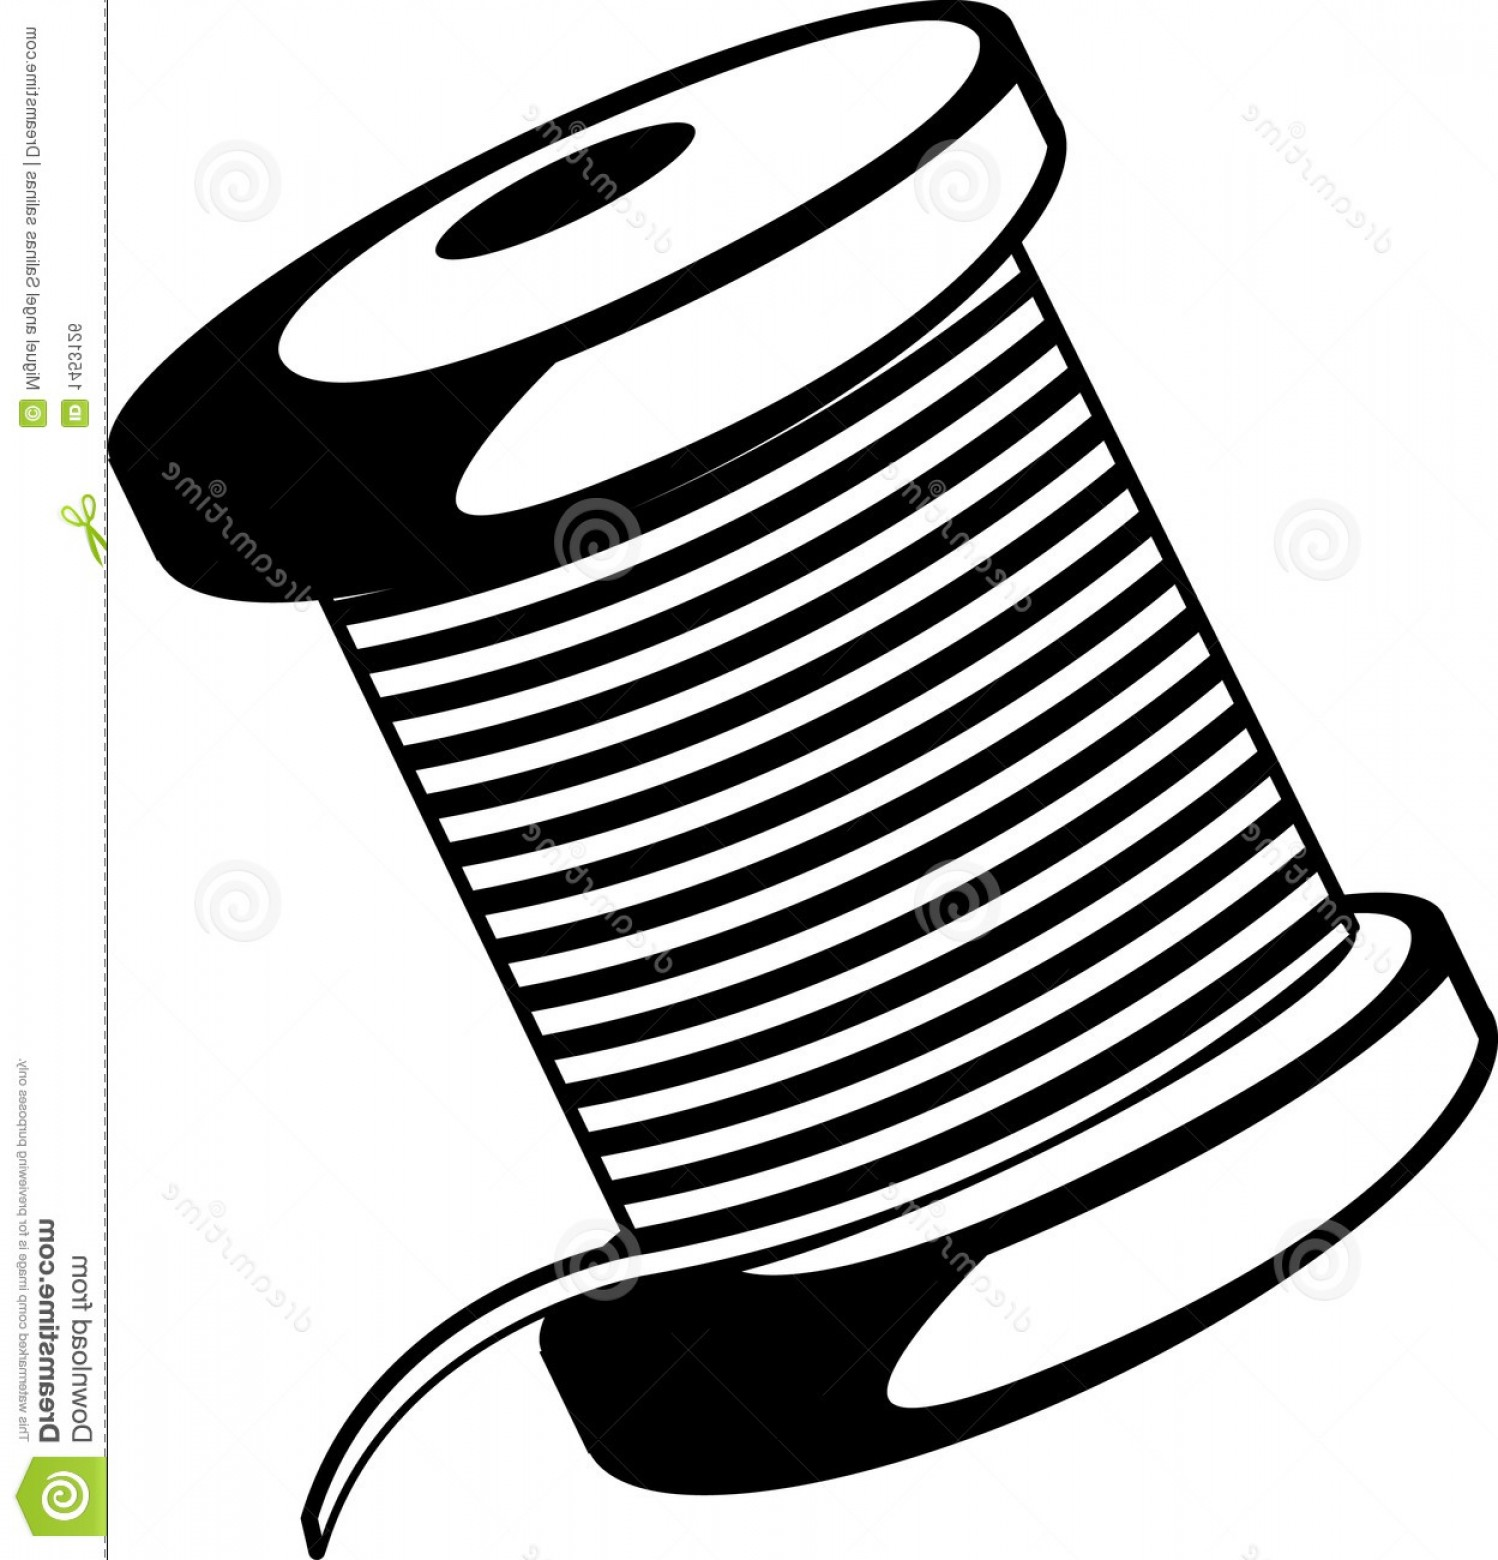 1498x1560 Royalty Free Stock Image Wire Thread Spool Vector Illustration